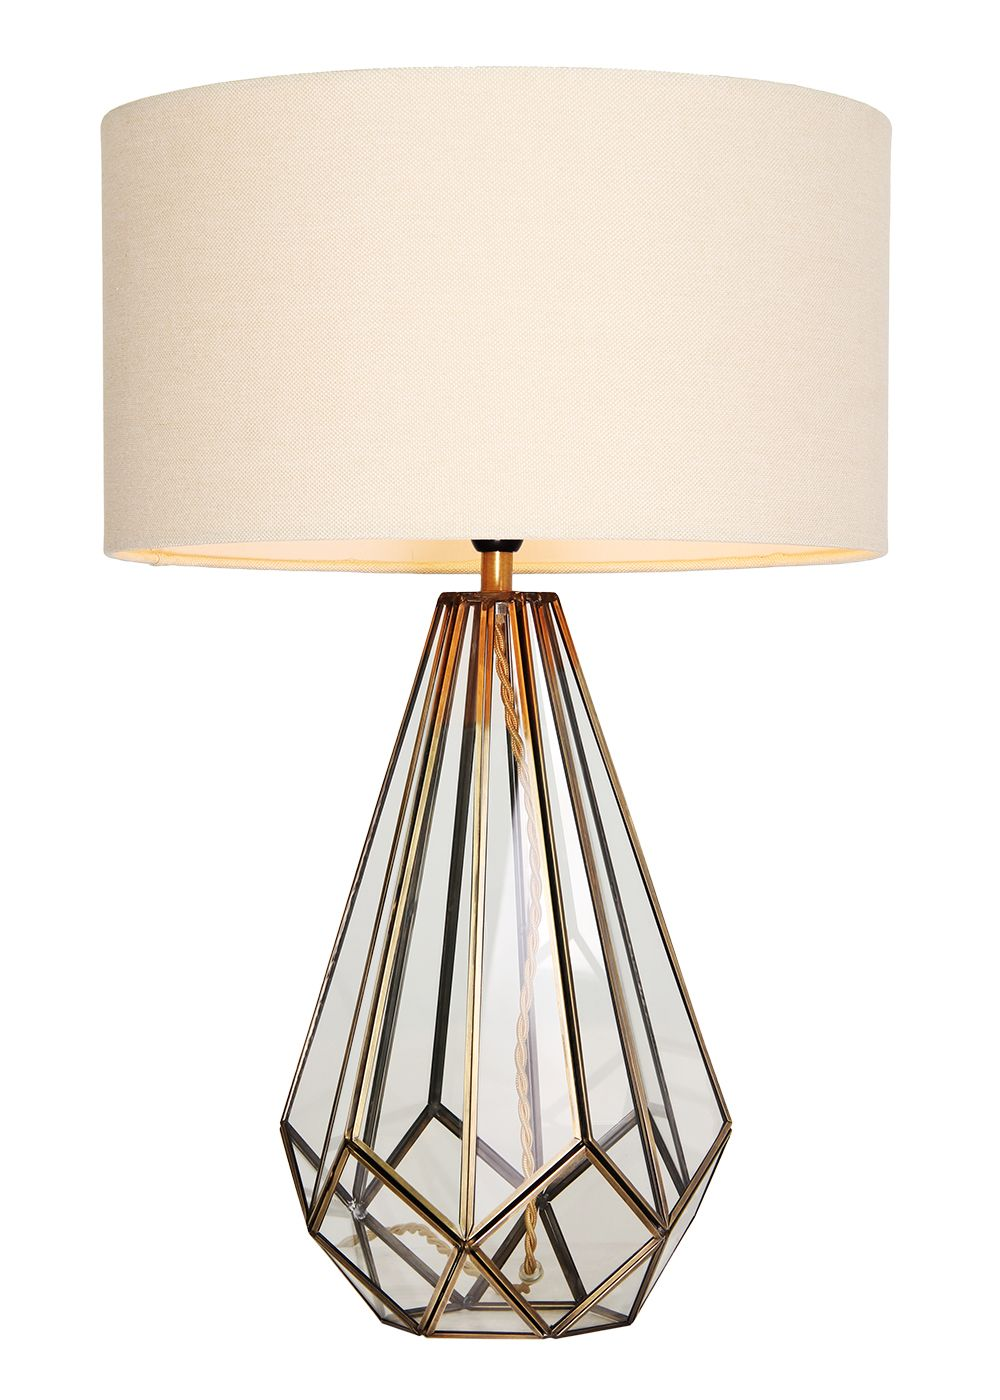 Ava Glass Table Lamp H57cm X W38cm Clear Lamp Glass Table